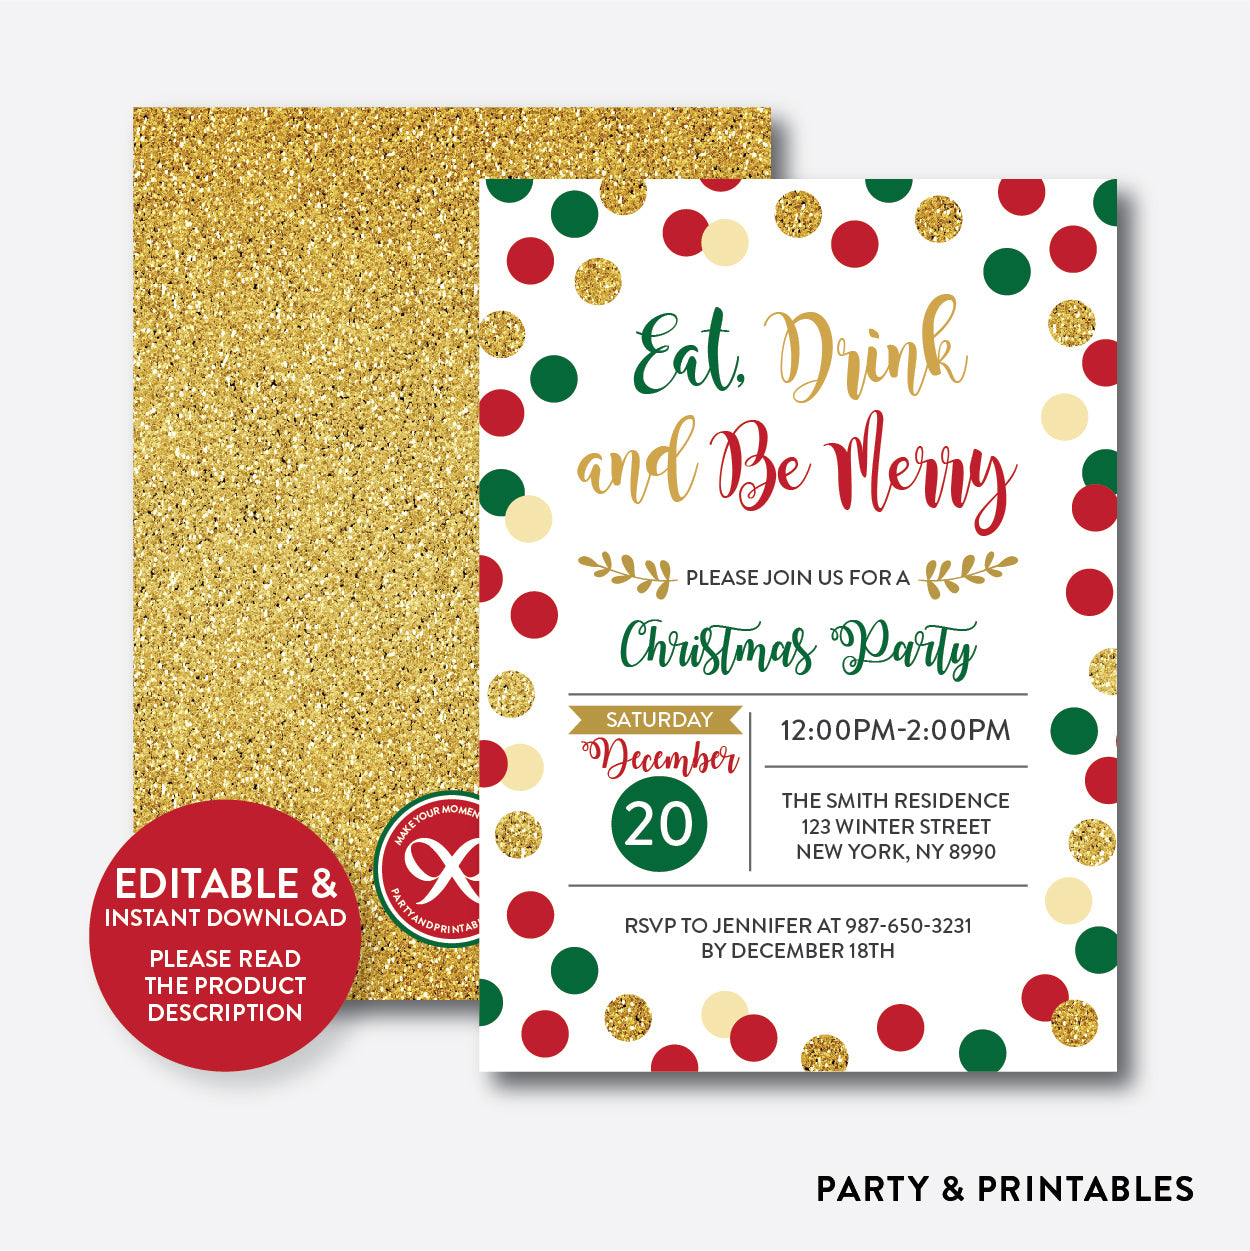 Christmas Invitation.Eat Drink And Be Merry Christmas Invitation Editable Instant Download Ghi 01